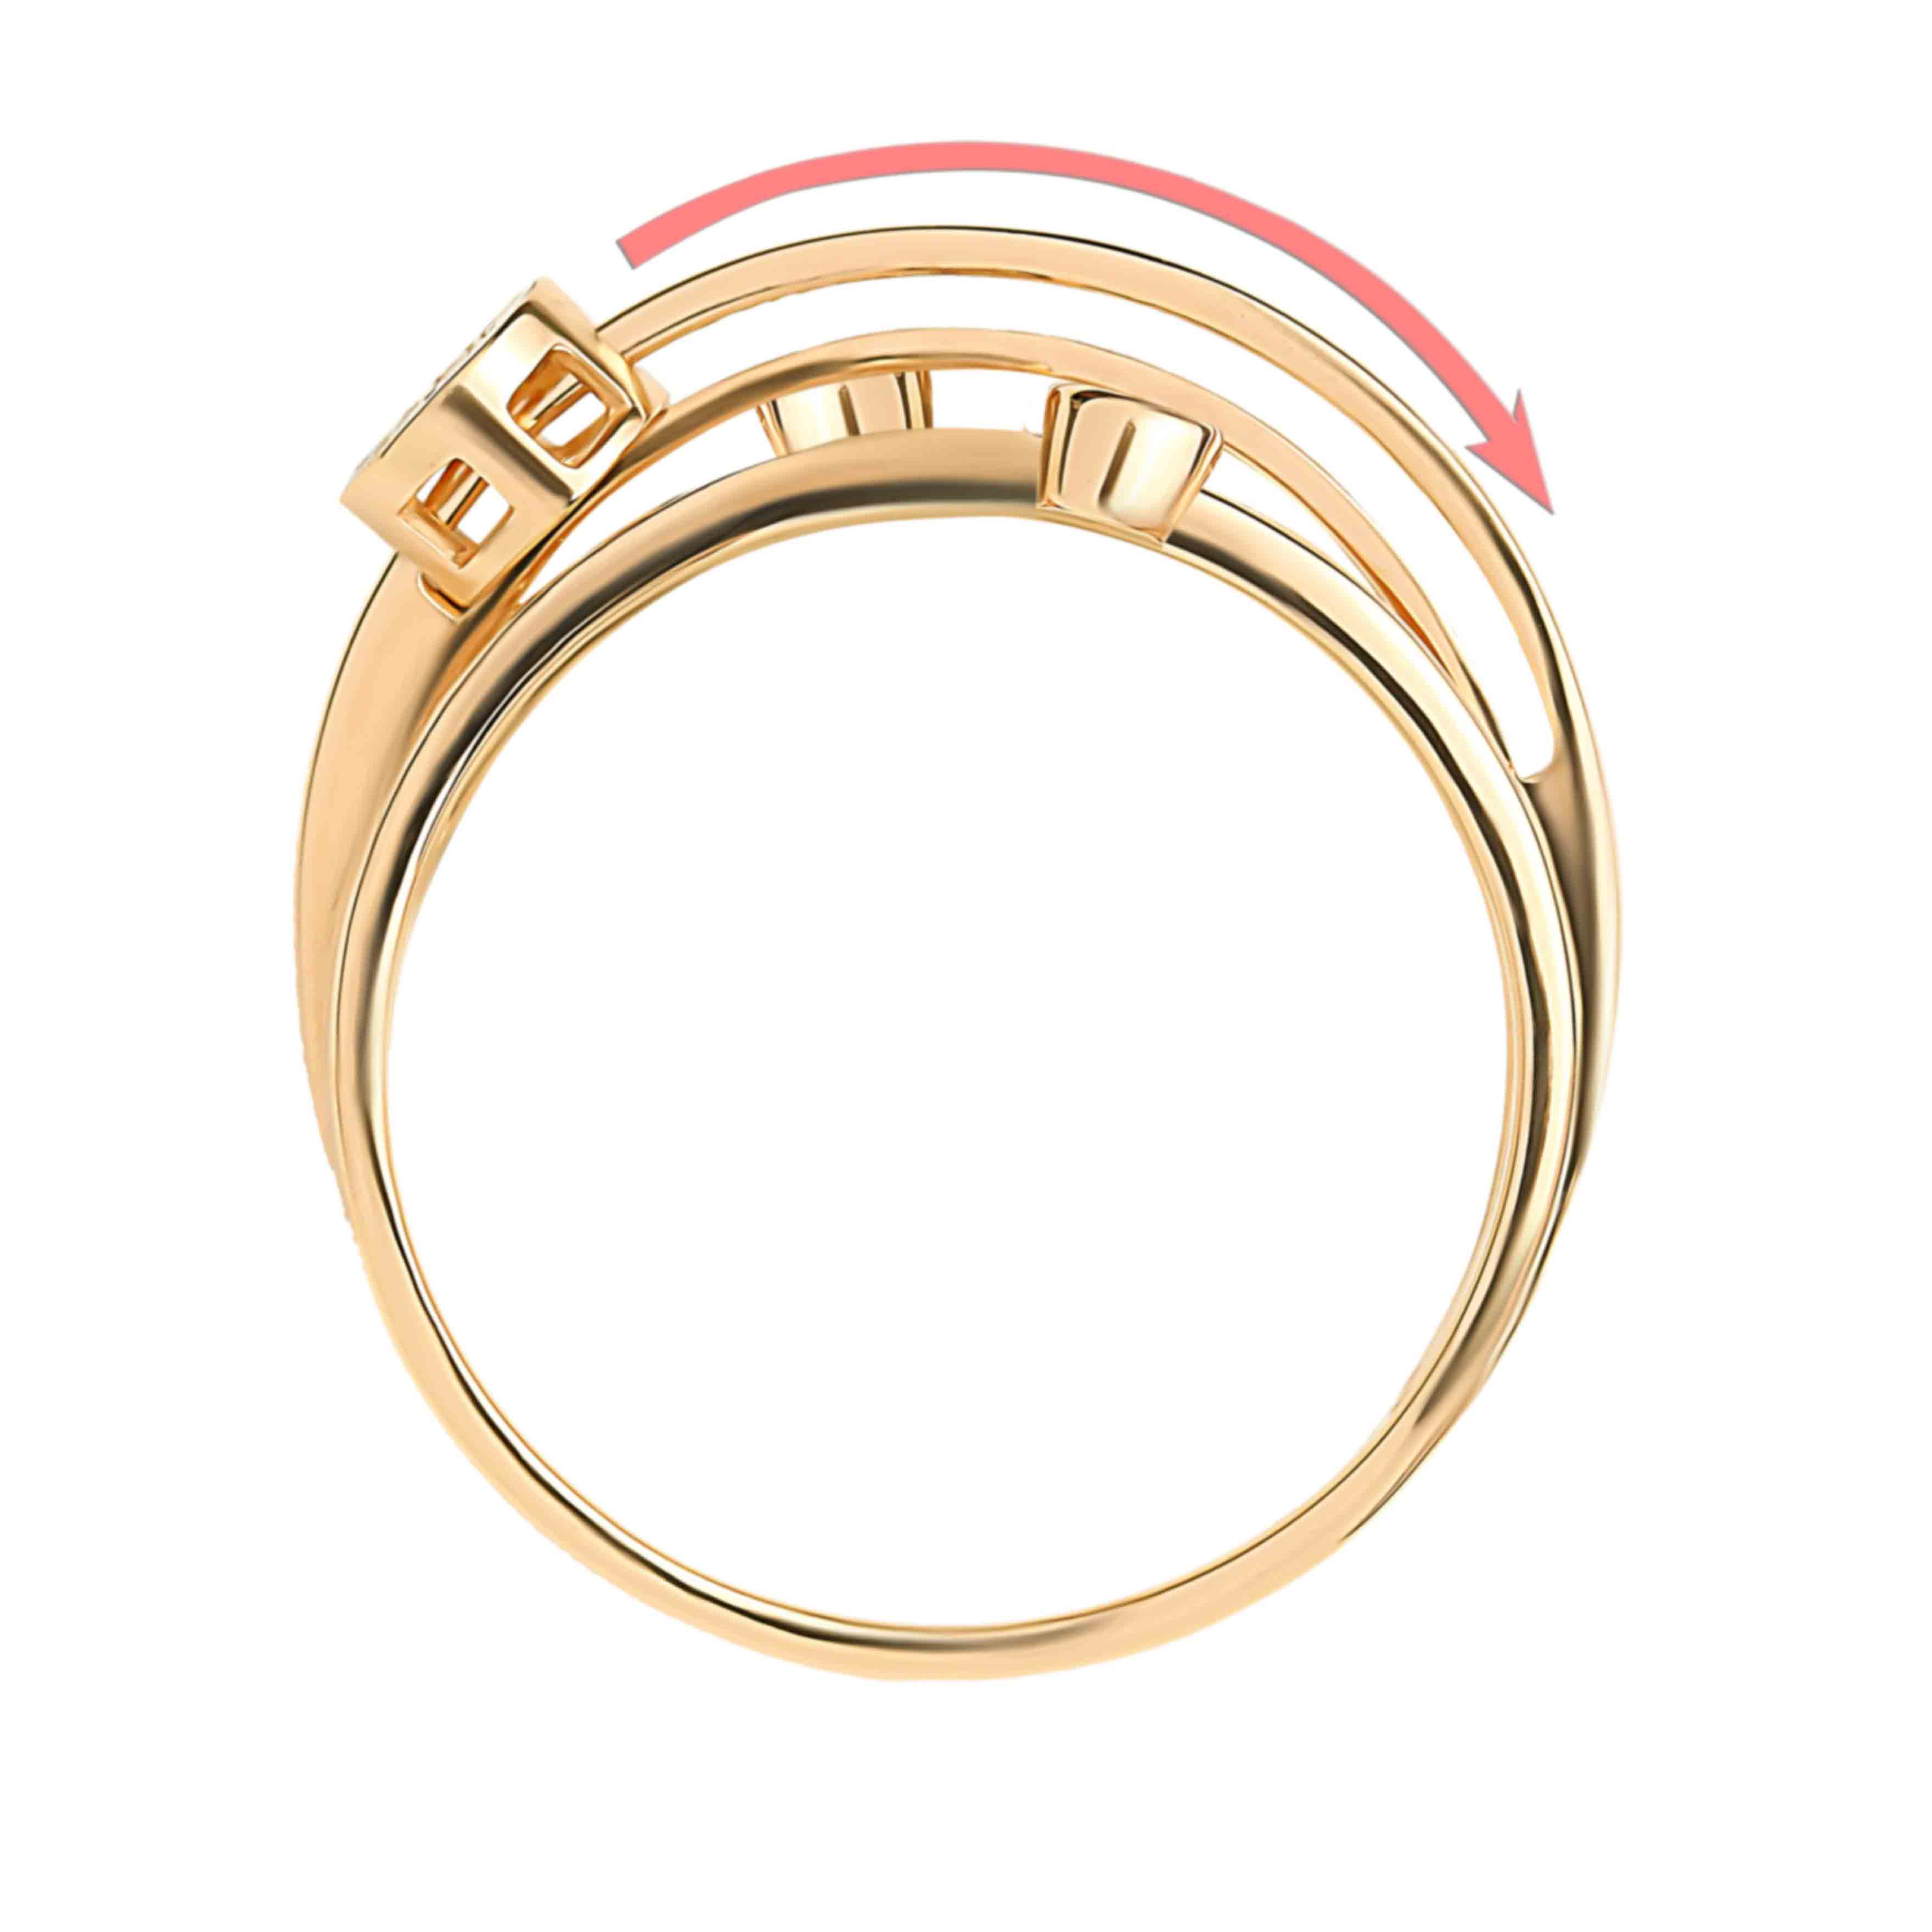 Movable CZ Rose Gold Ring. View 4